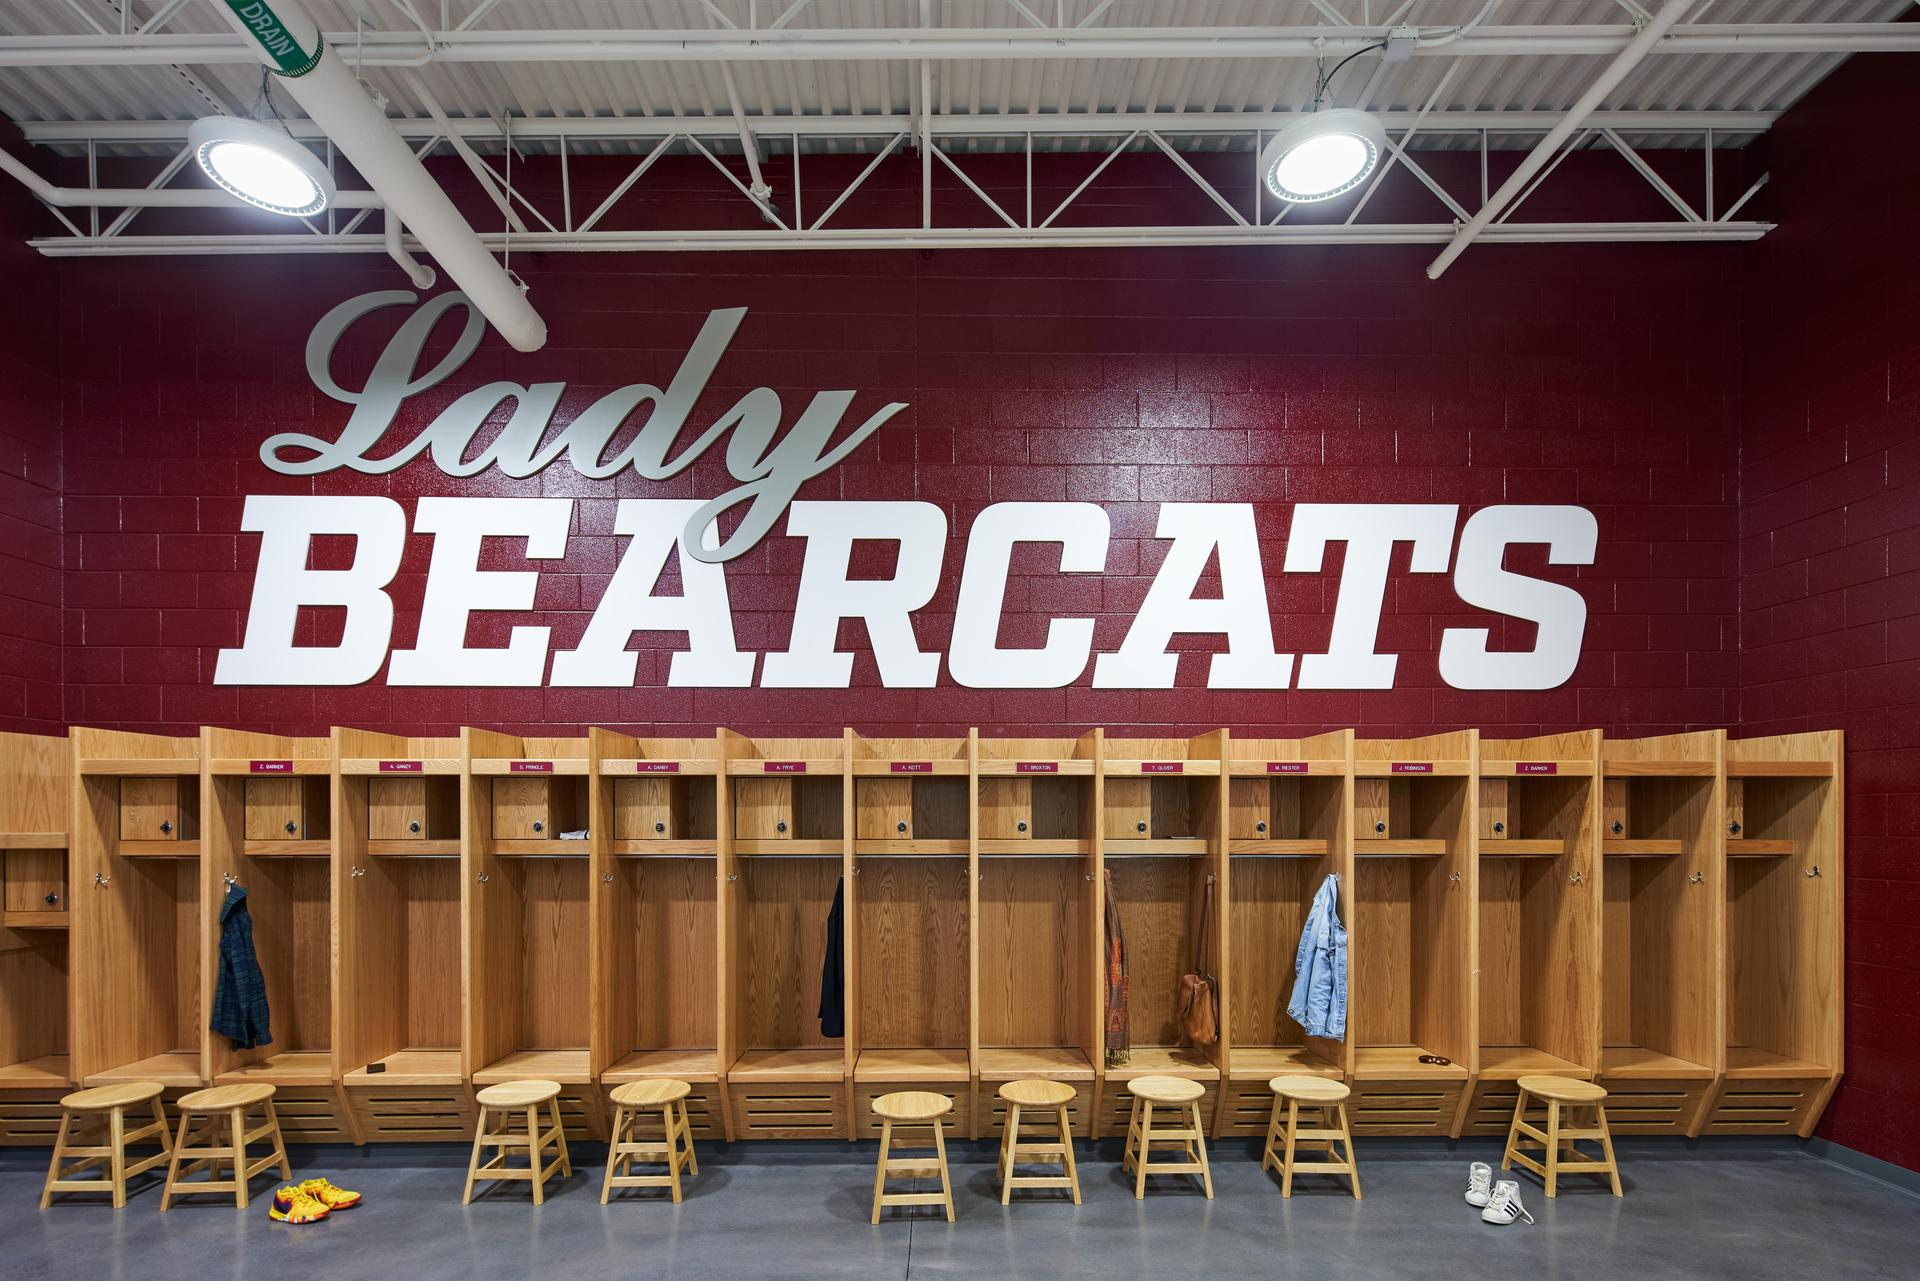 Lady Bearcats Locker Room at the new Brookland-Cayce High School Arena